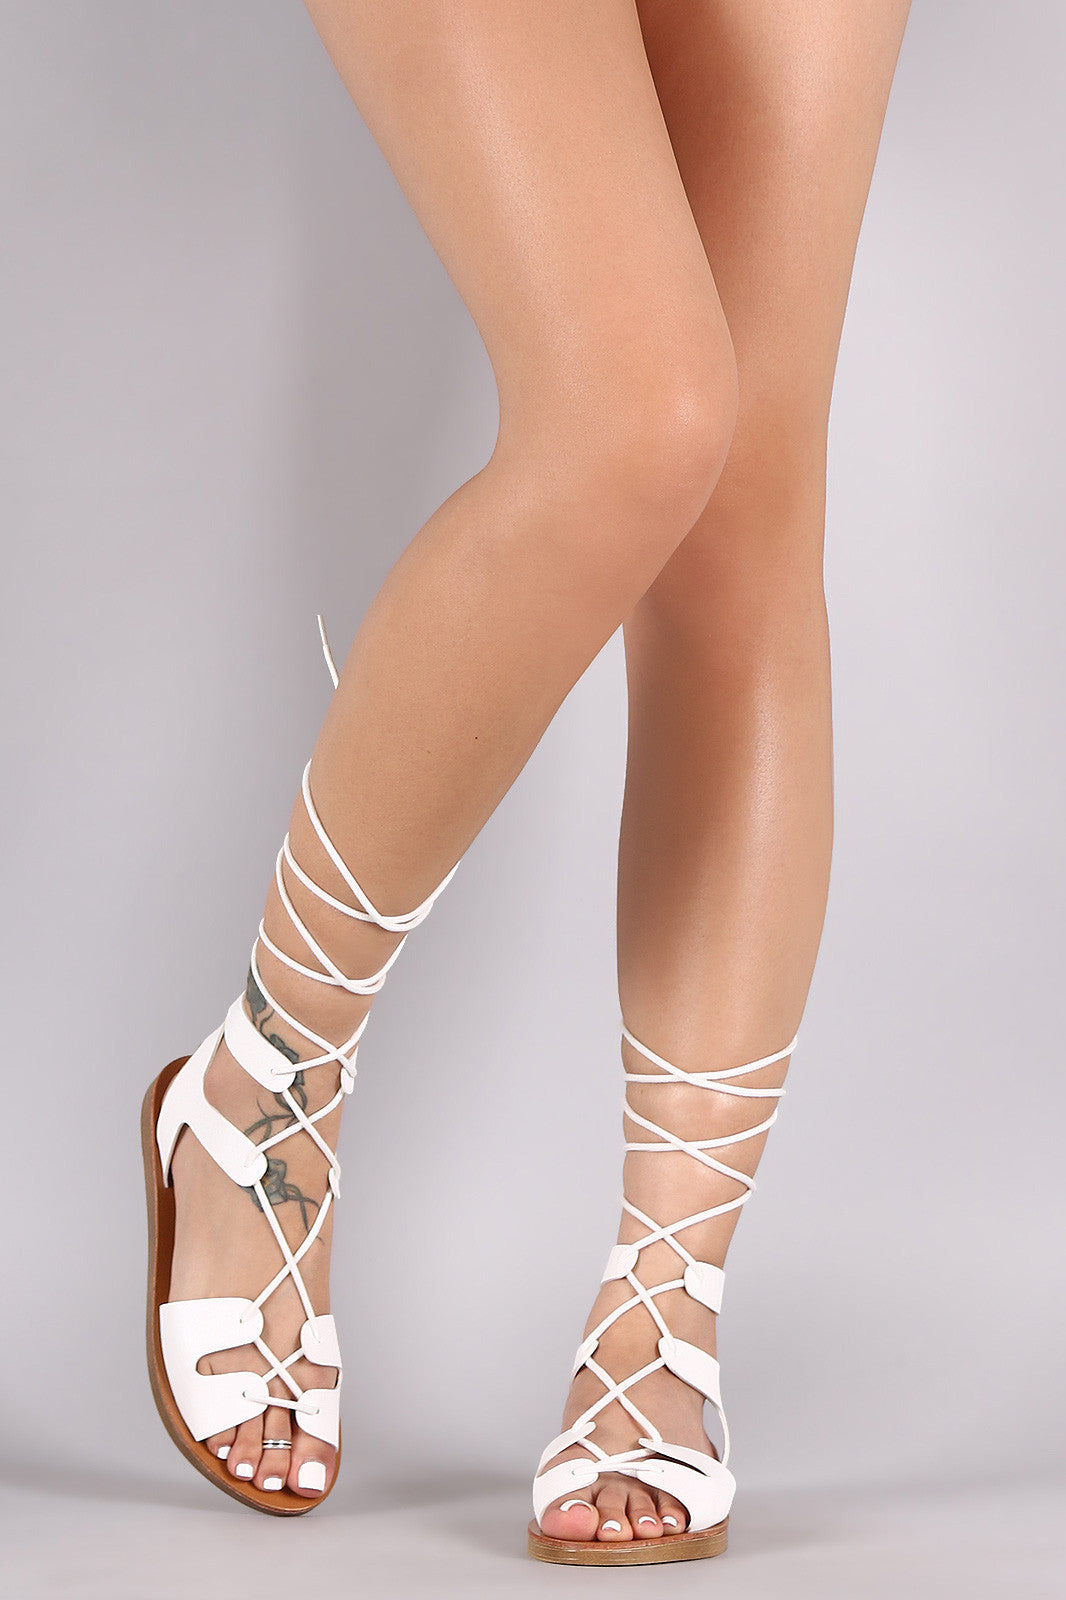 Breckelle Strappy Lace-Up Gladiator Flat Sandal - Thick 'N' Curvy Shop - 7